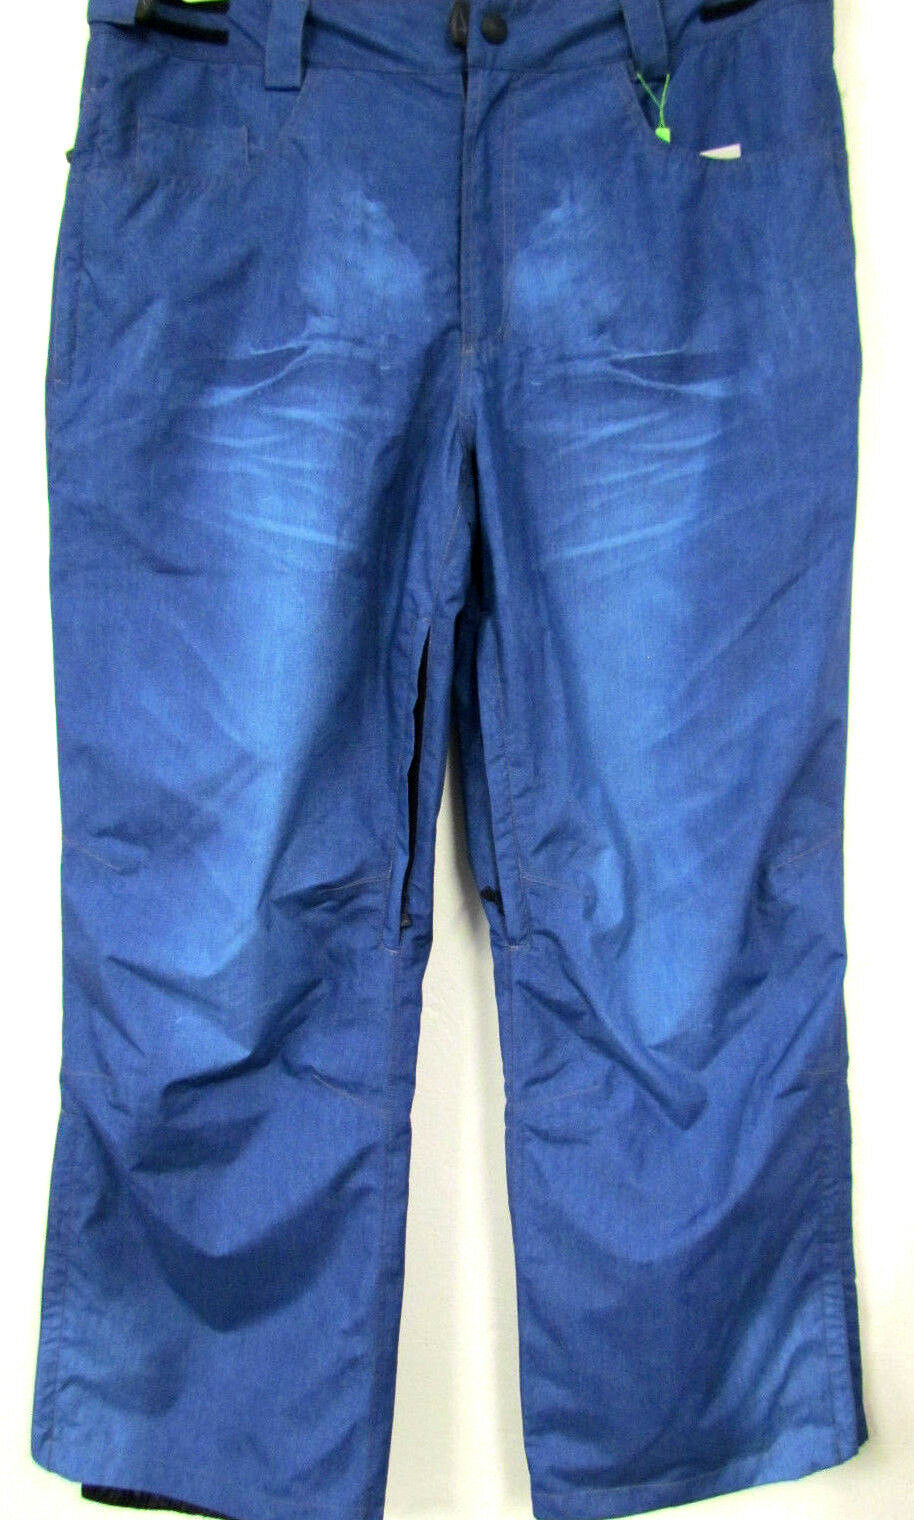 New Men's Brands Ski Snowboard Trousers Jeans Look Adjustable bluee Large Size XL